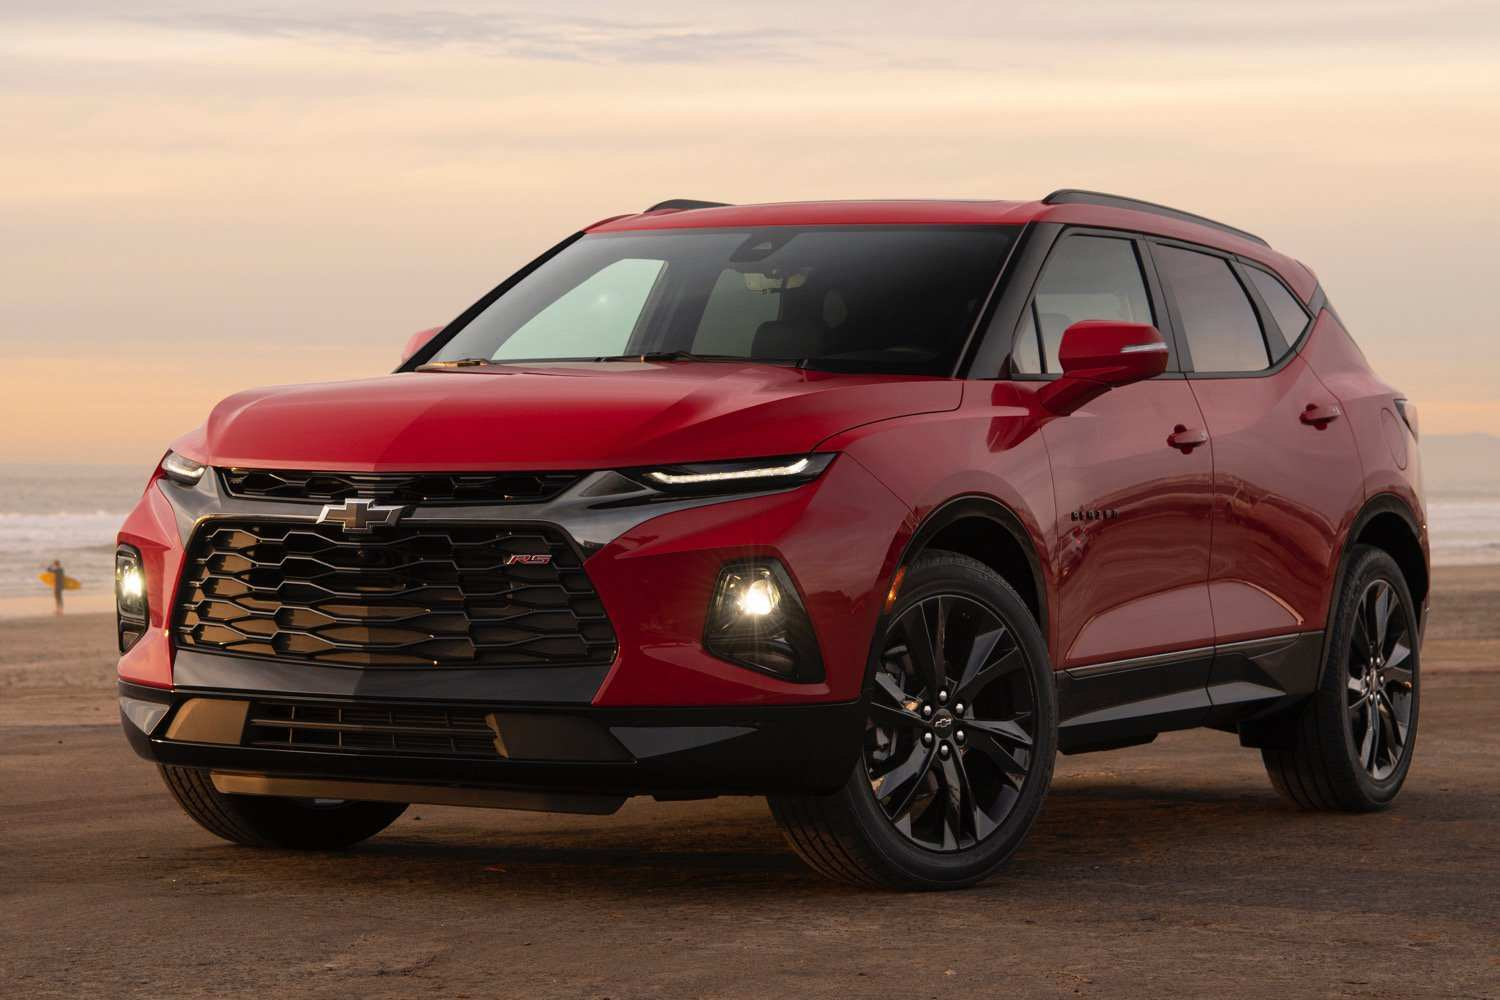 48 All New 2020 Chevy Blazer Picture